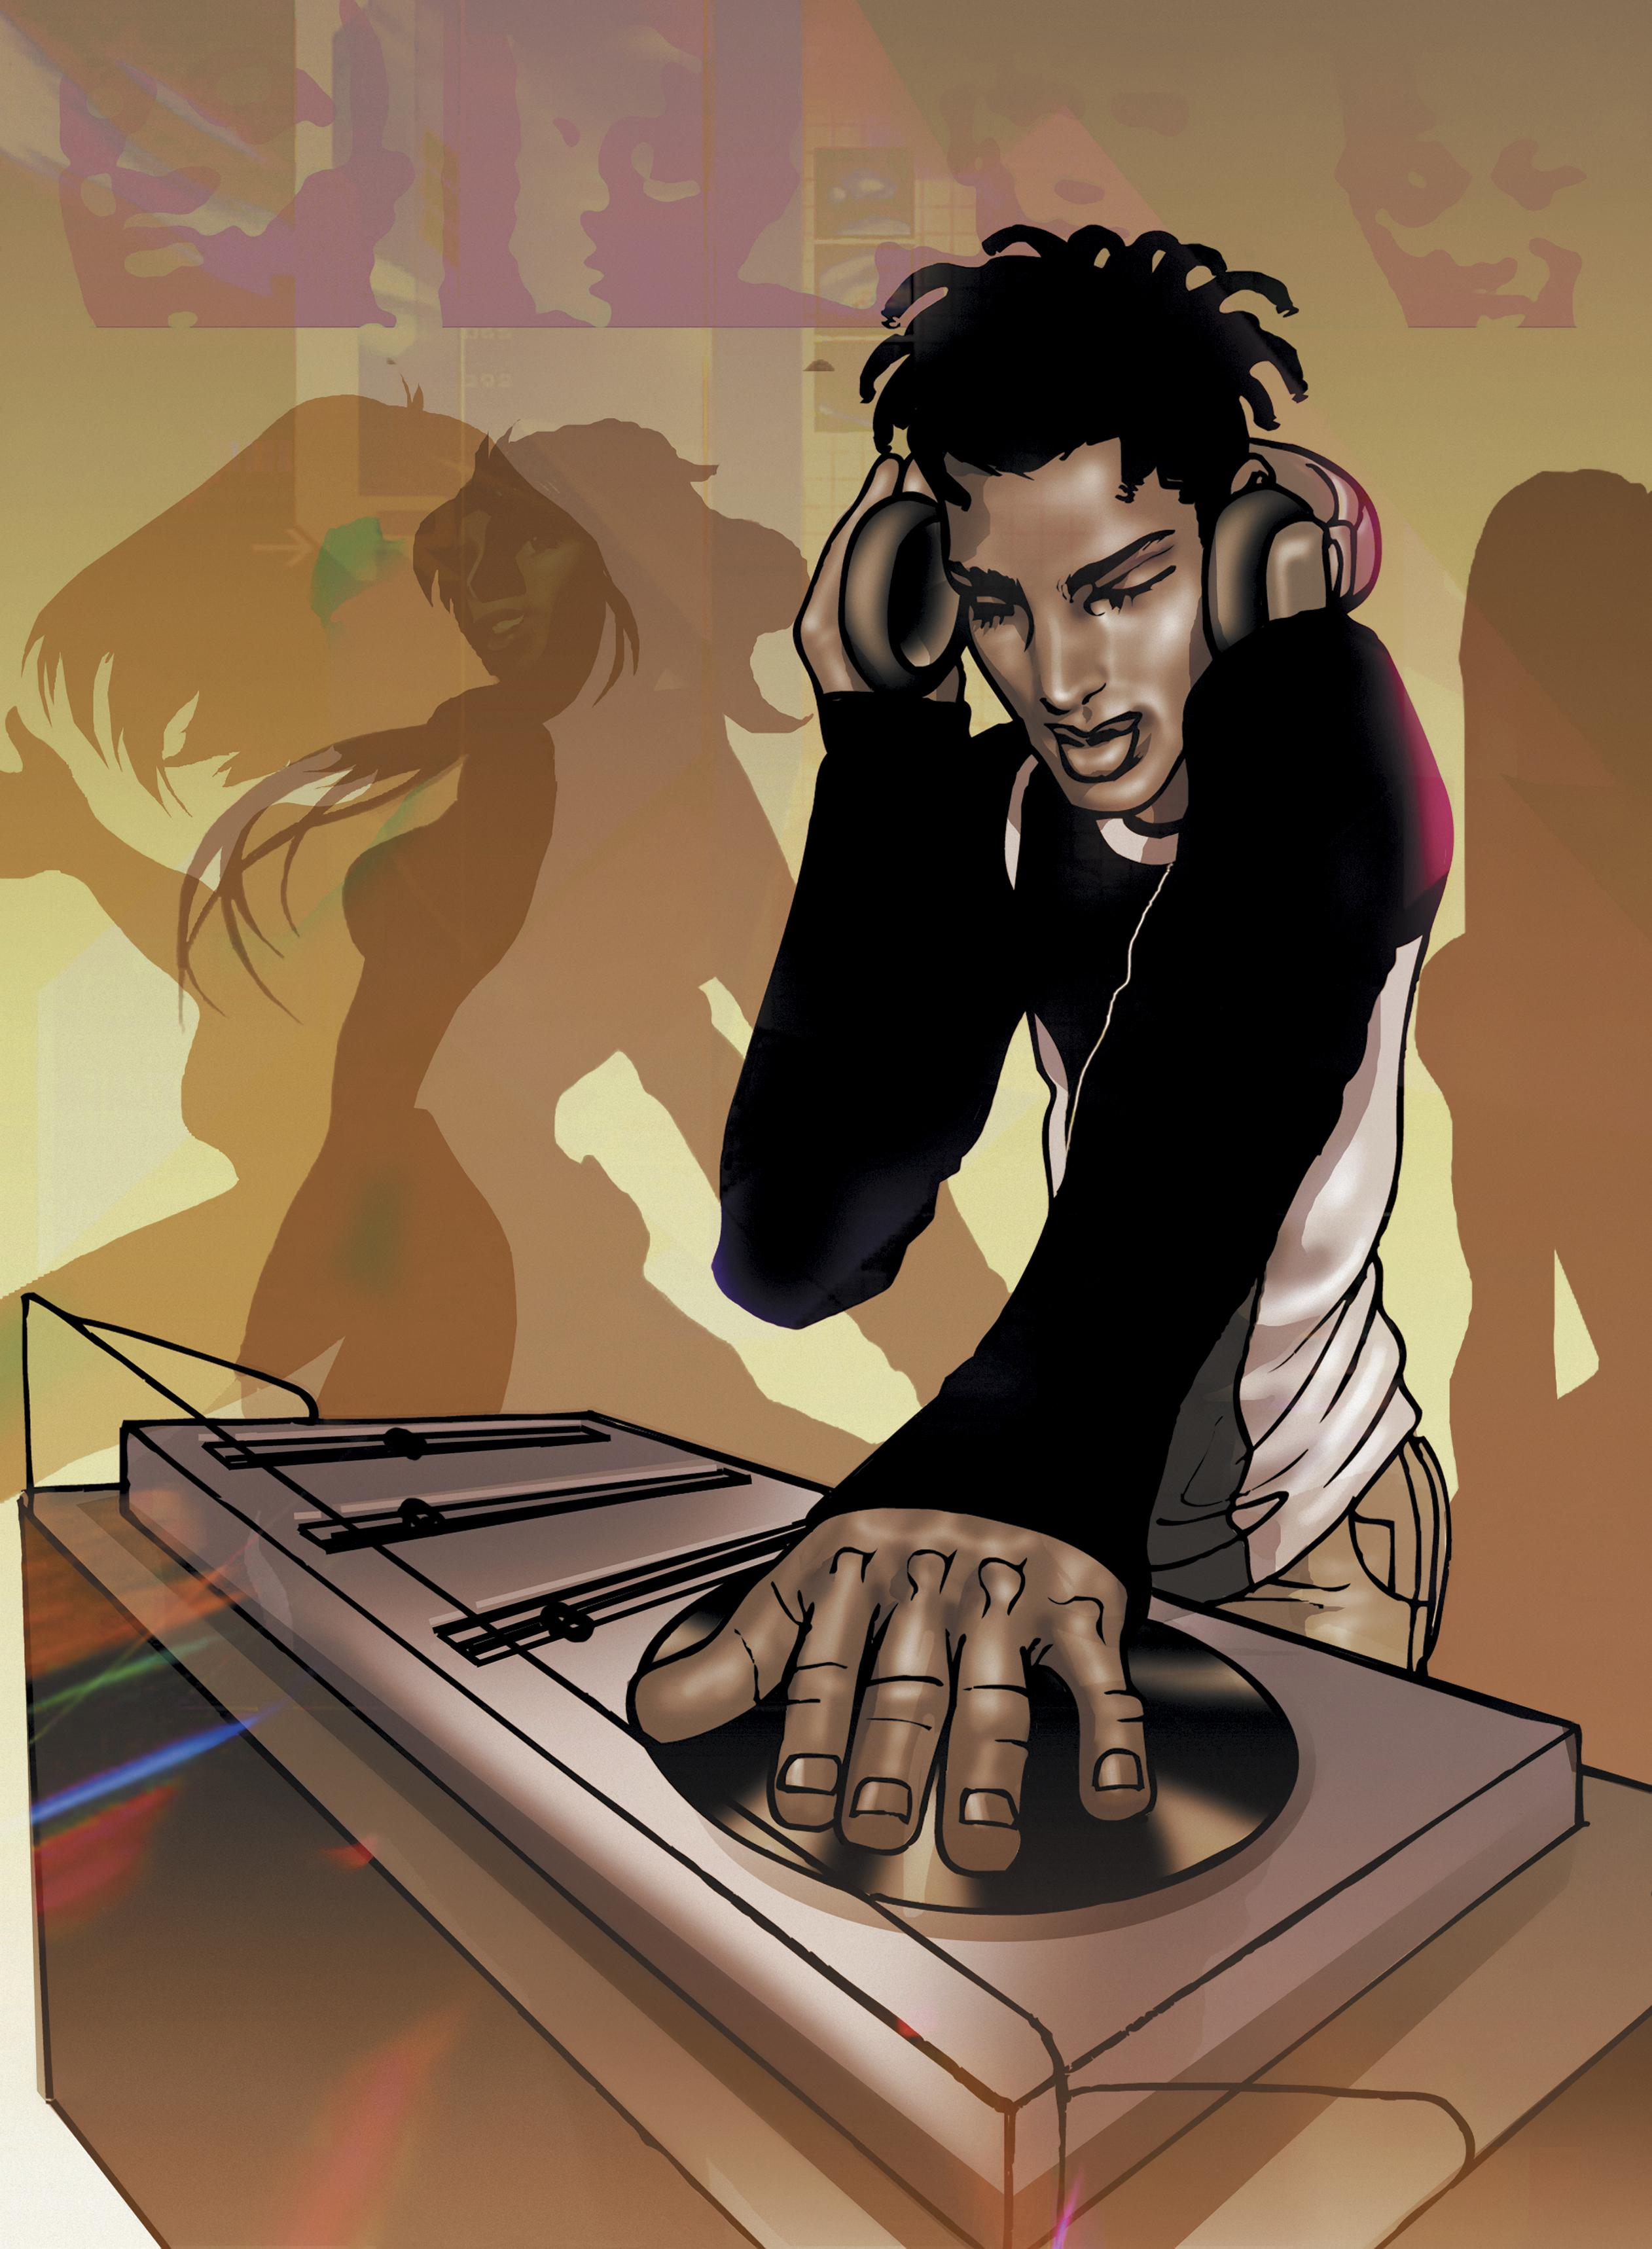 Portrait of a Young Dj Putting on a Record on a Turntable in a Nightclub